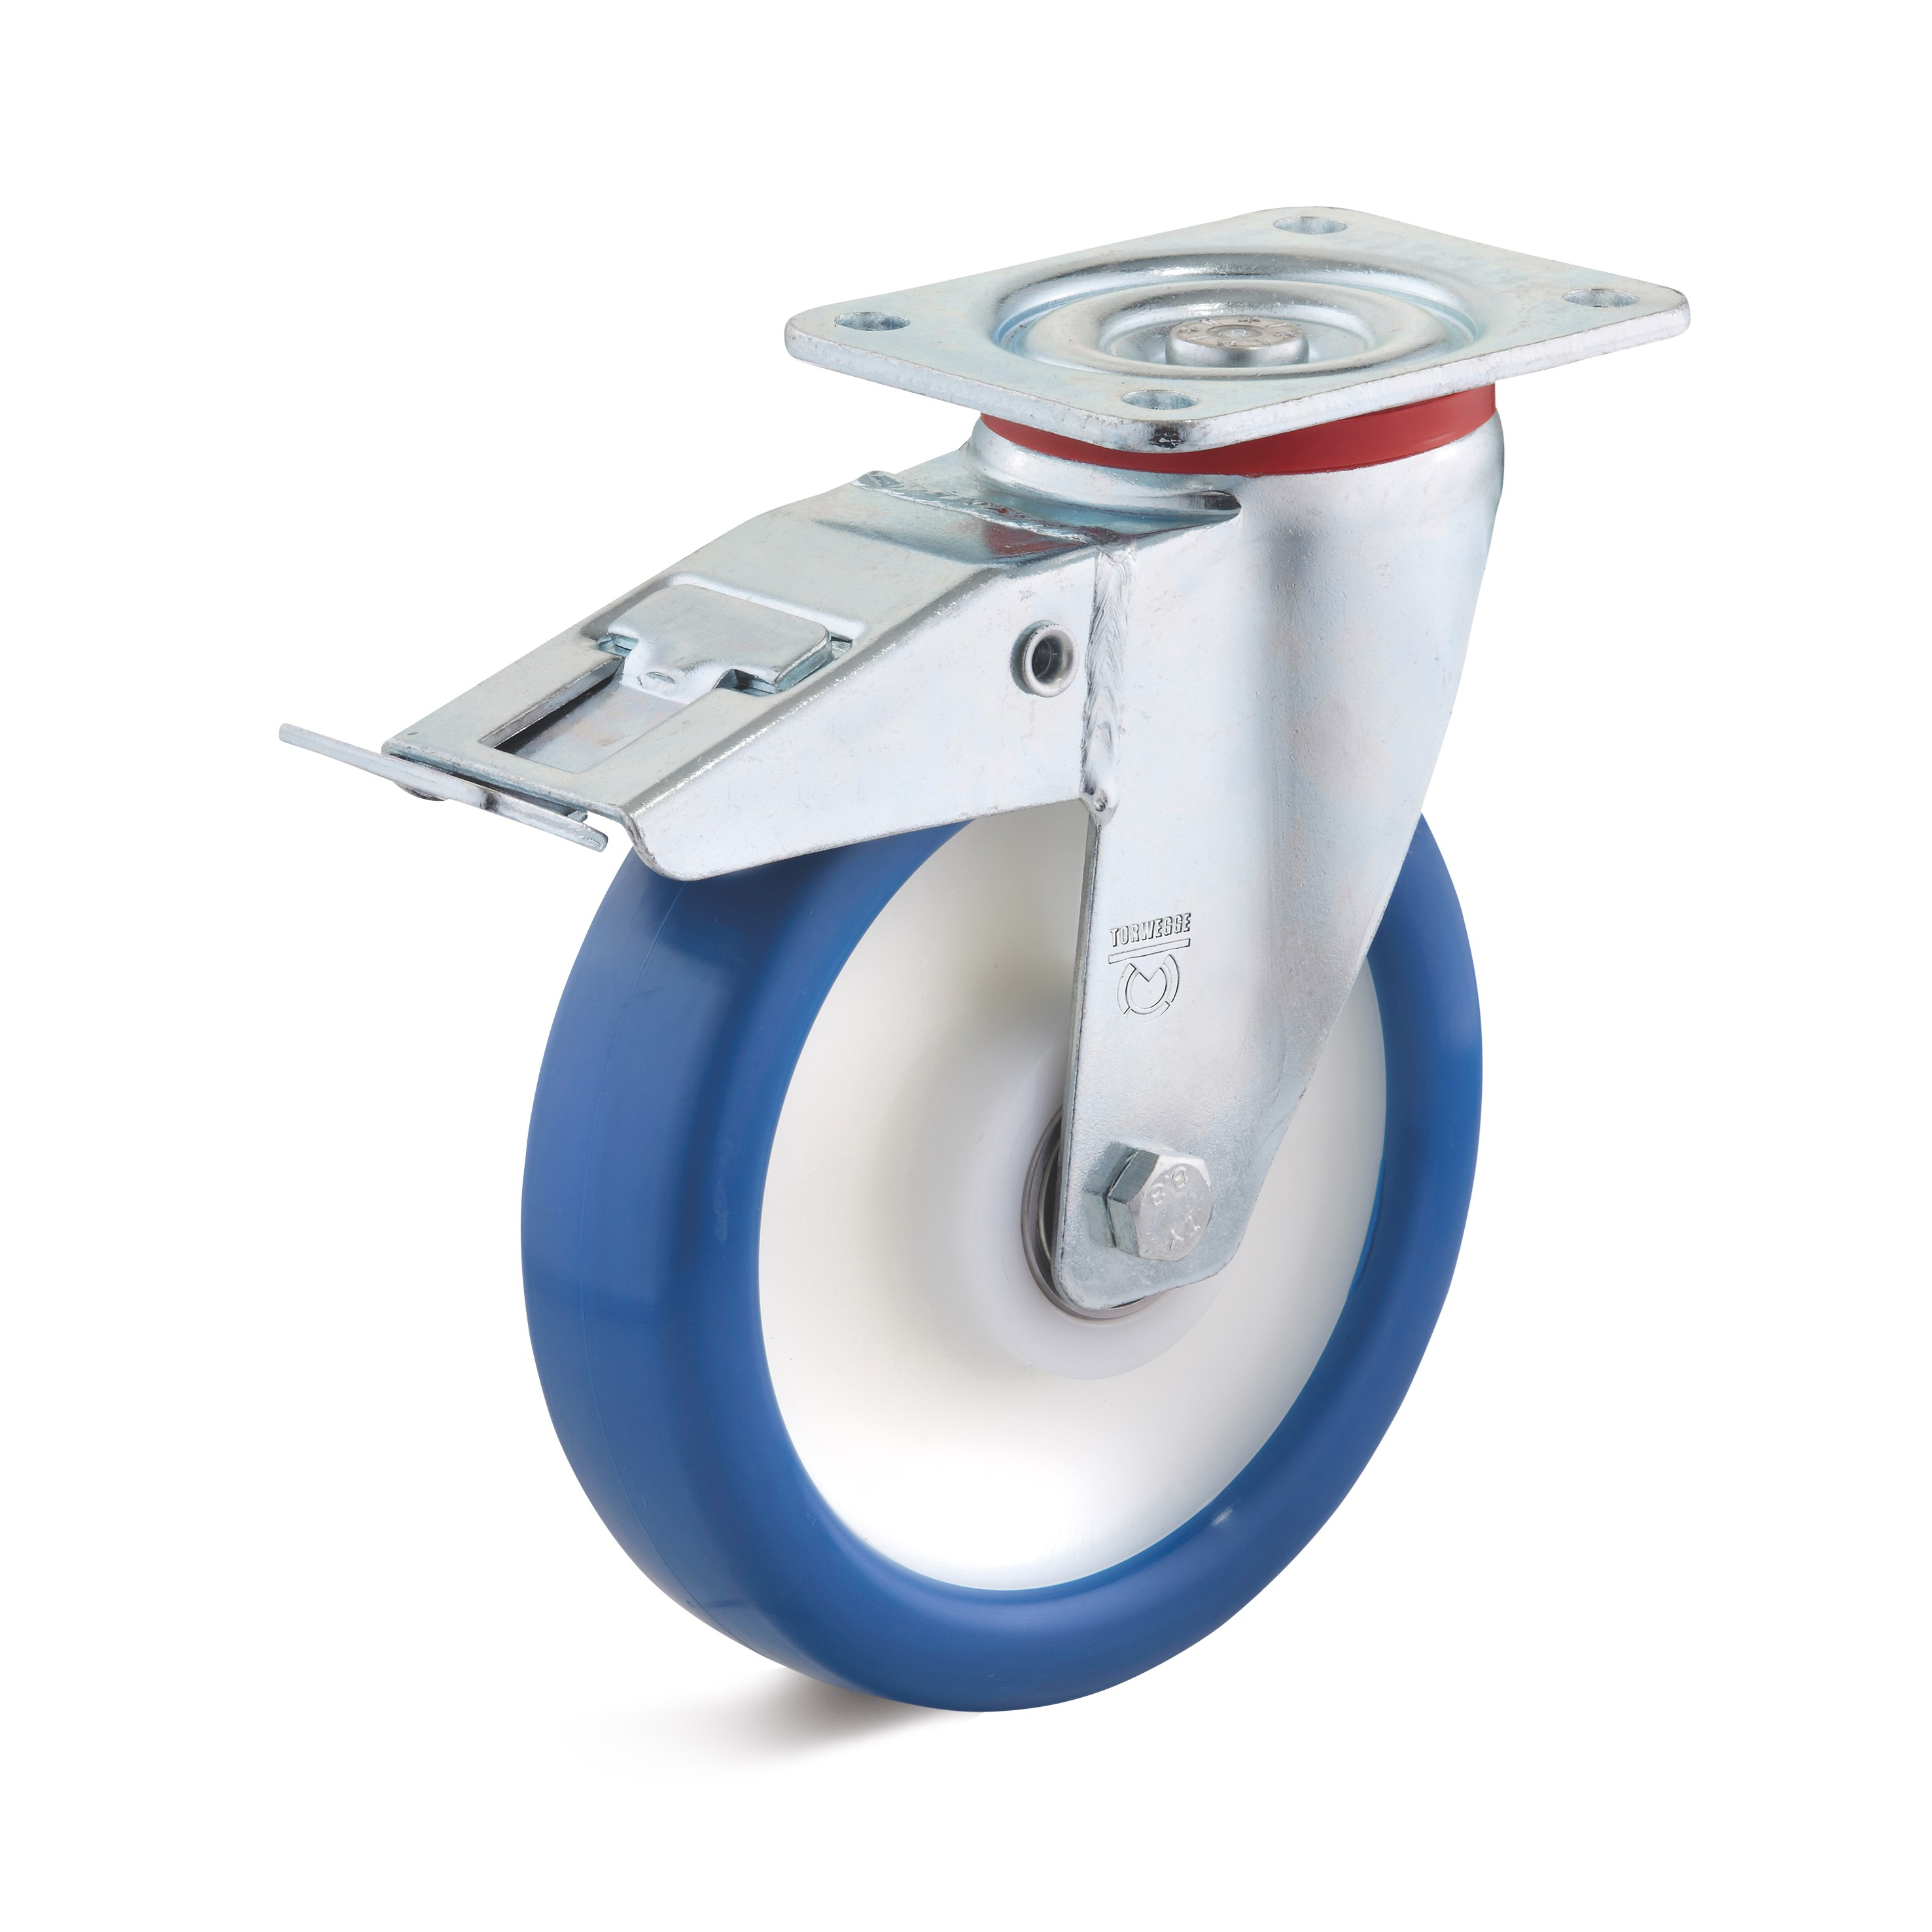 Swivel castor with double stop in the caster and elastic polyurethane wheel